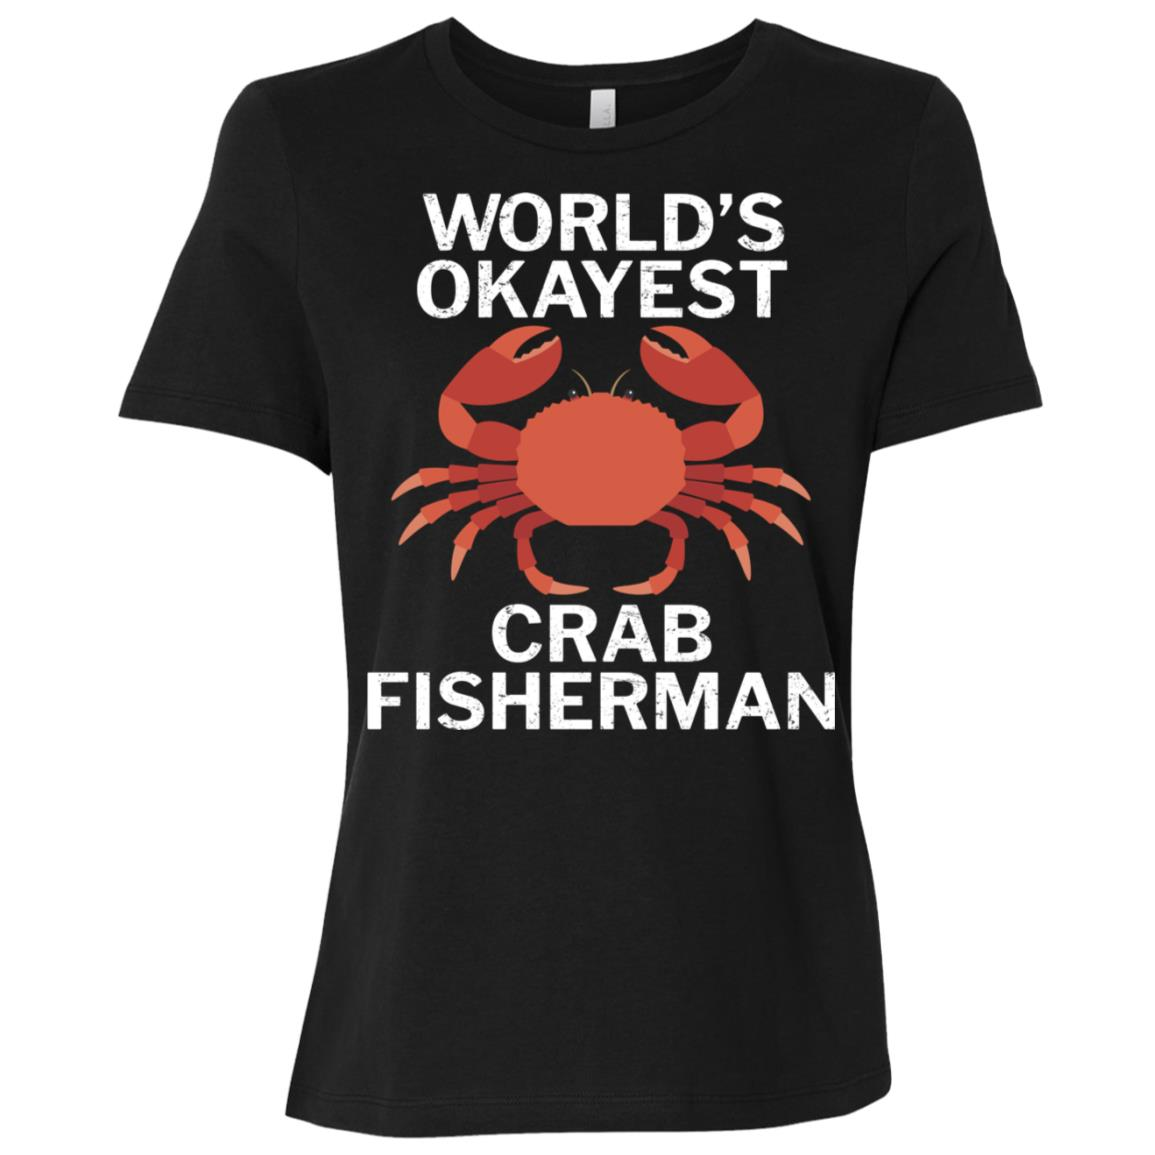 World's Okayest Crab Fisherman Funny Women Short Sleeve T-Shirt